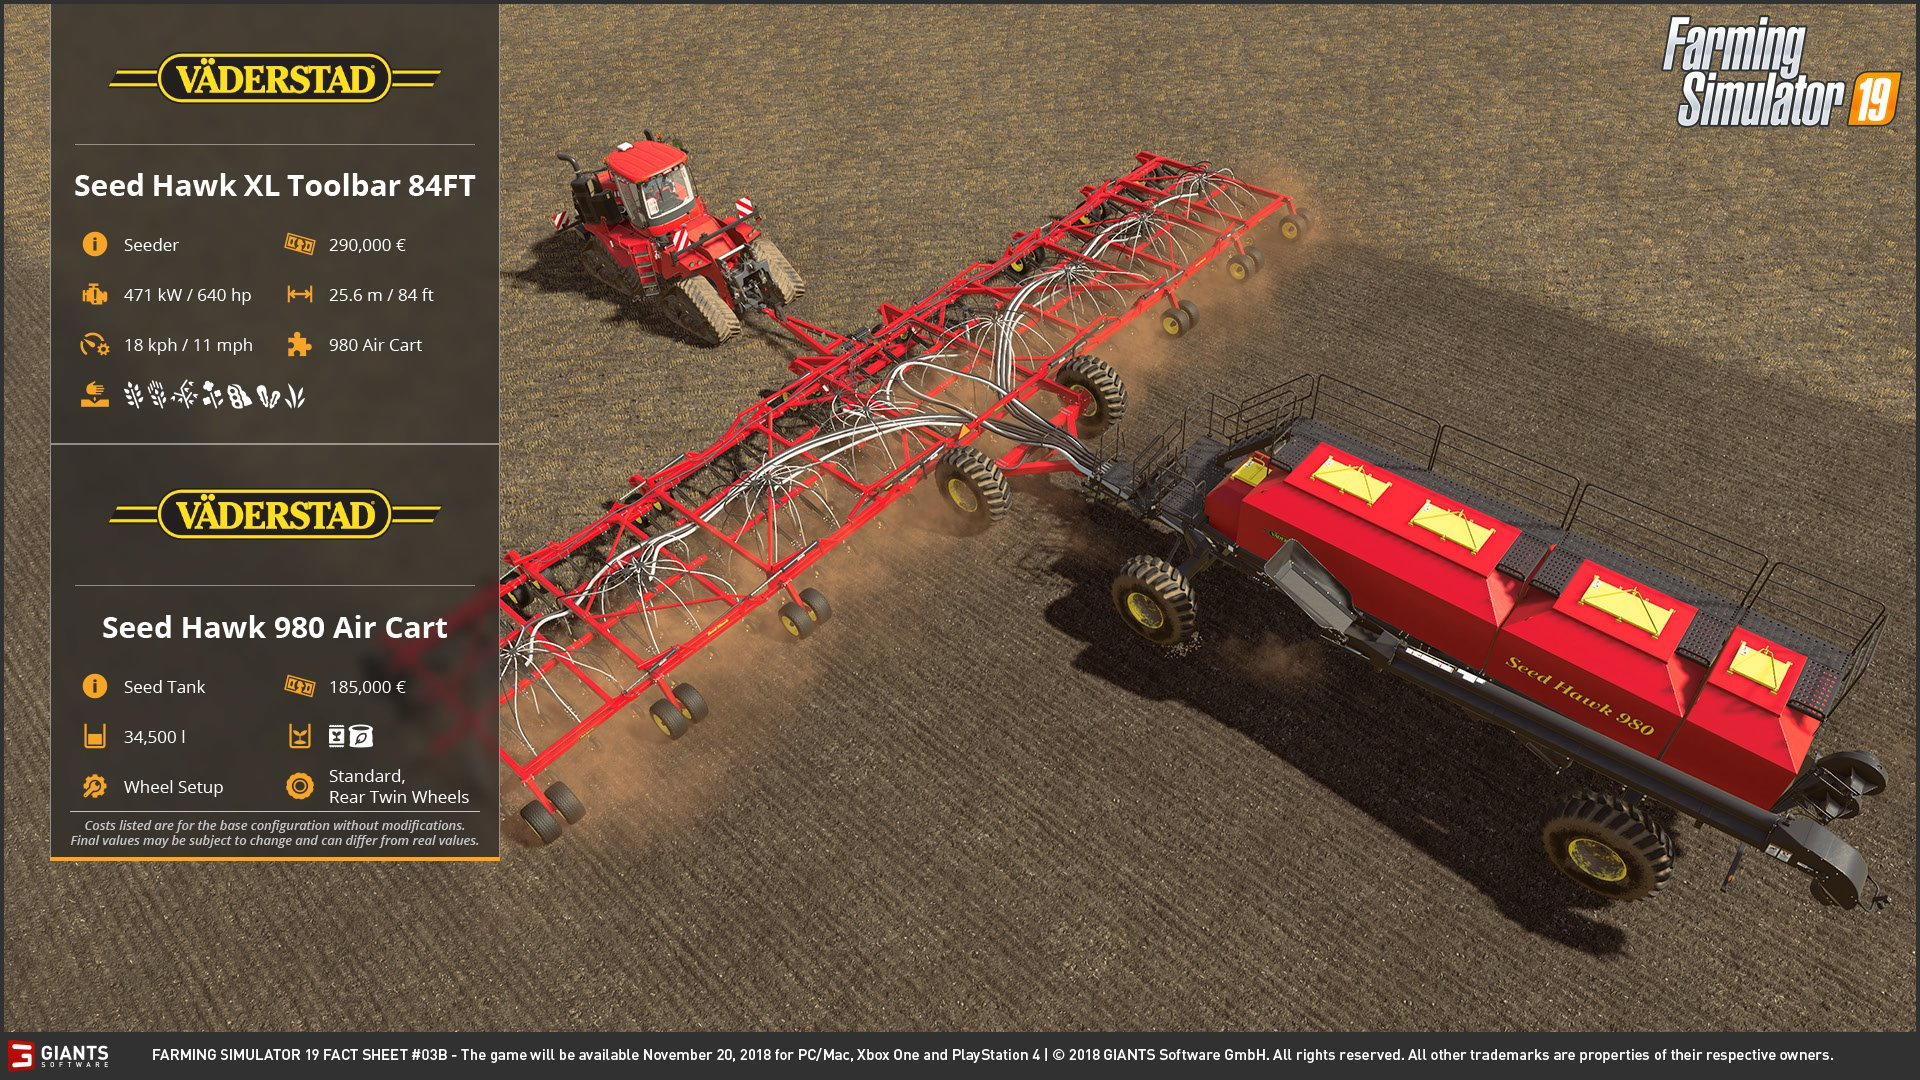 Farming Simulator 2019 with new vehicles brands - Farming